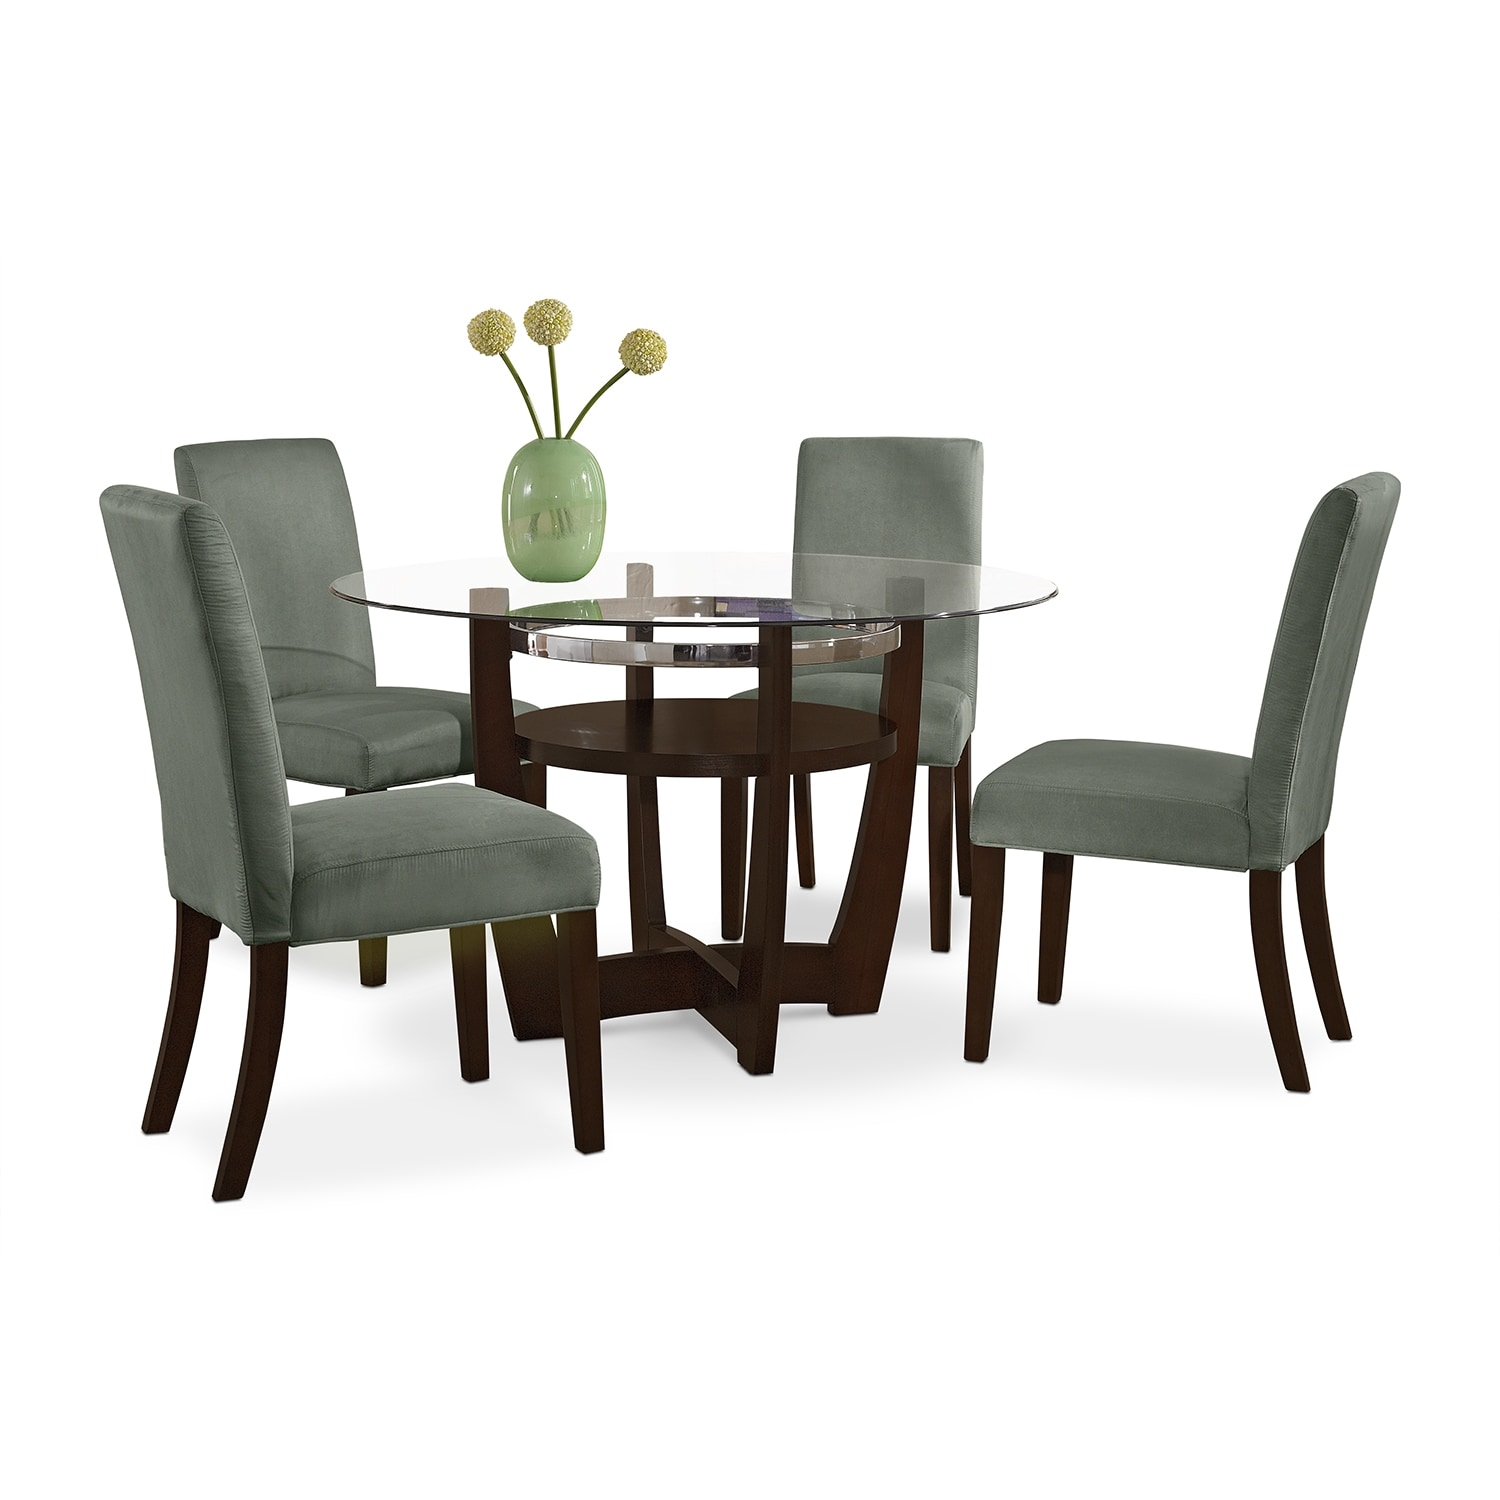 Alcove Dinette with Four Side Chairs - Sage